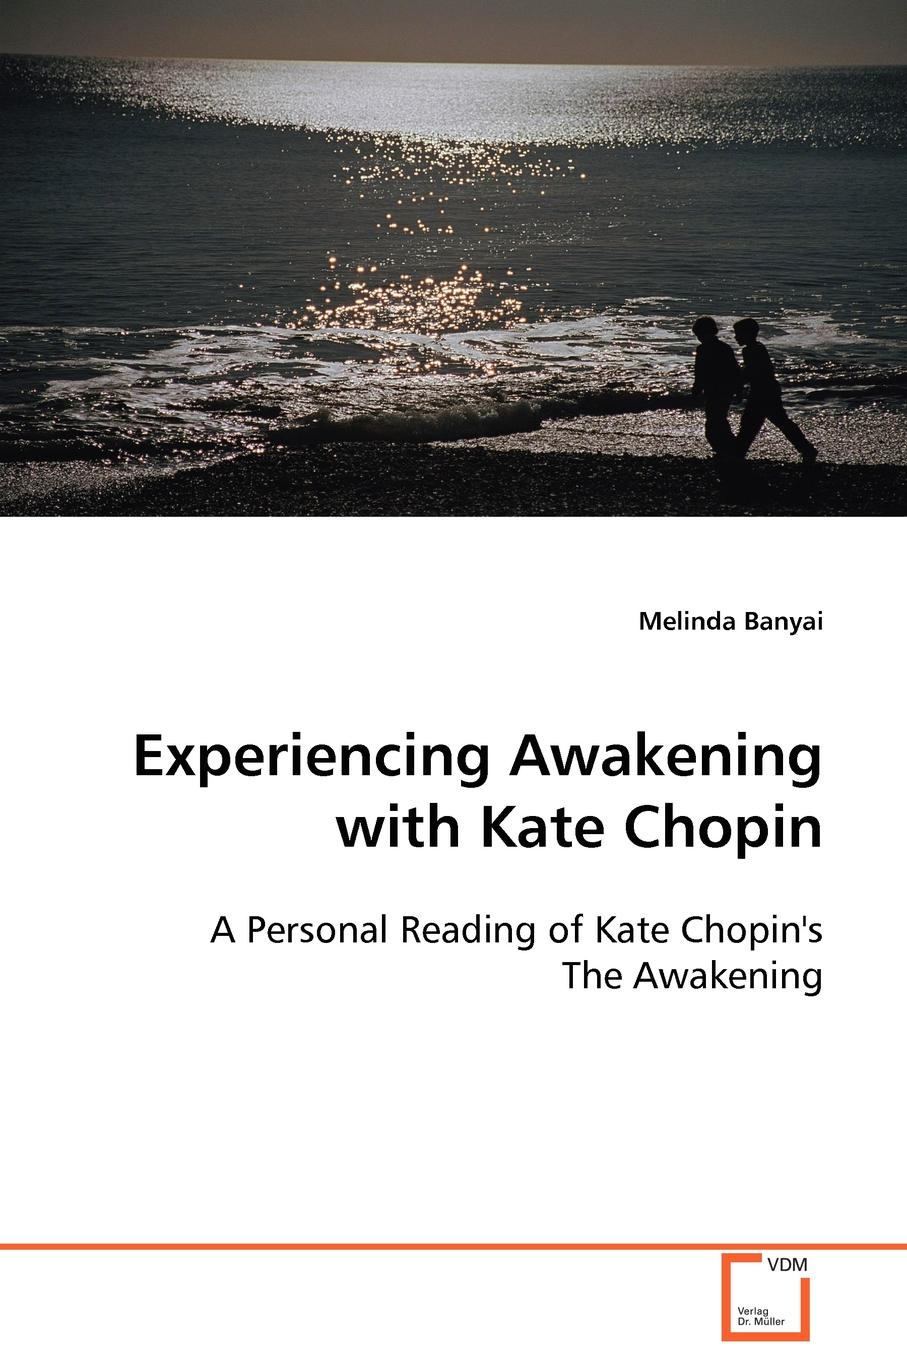 лучшая цена Melinda Banyai Experiencing Awakening with Kate Chopin